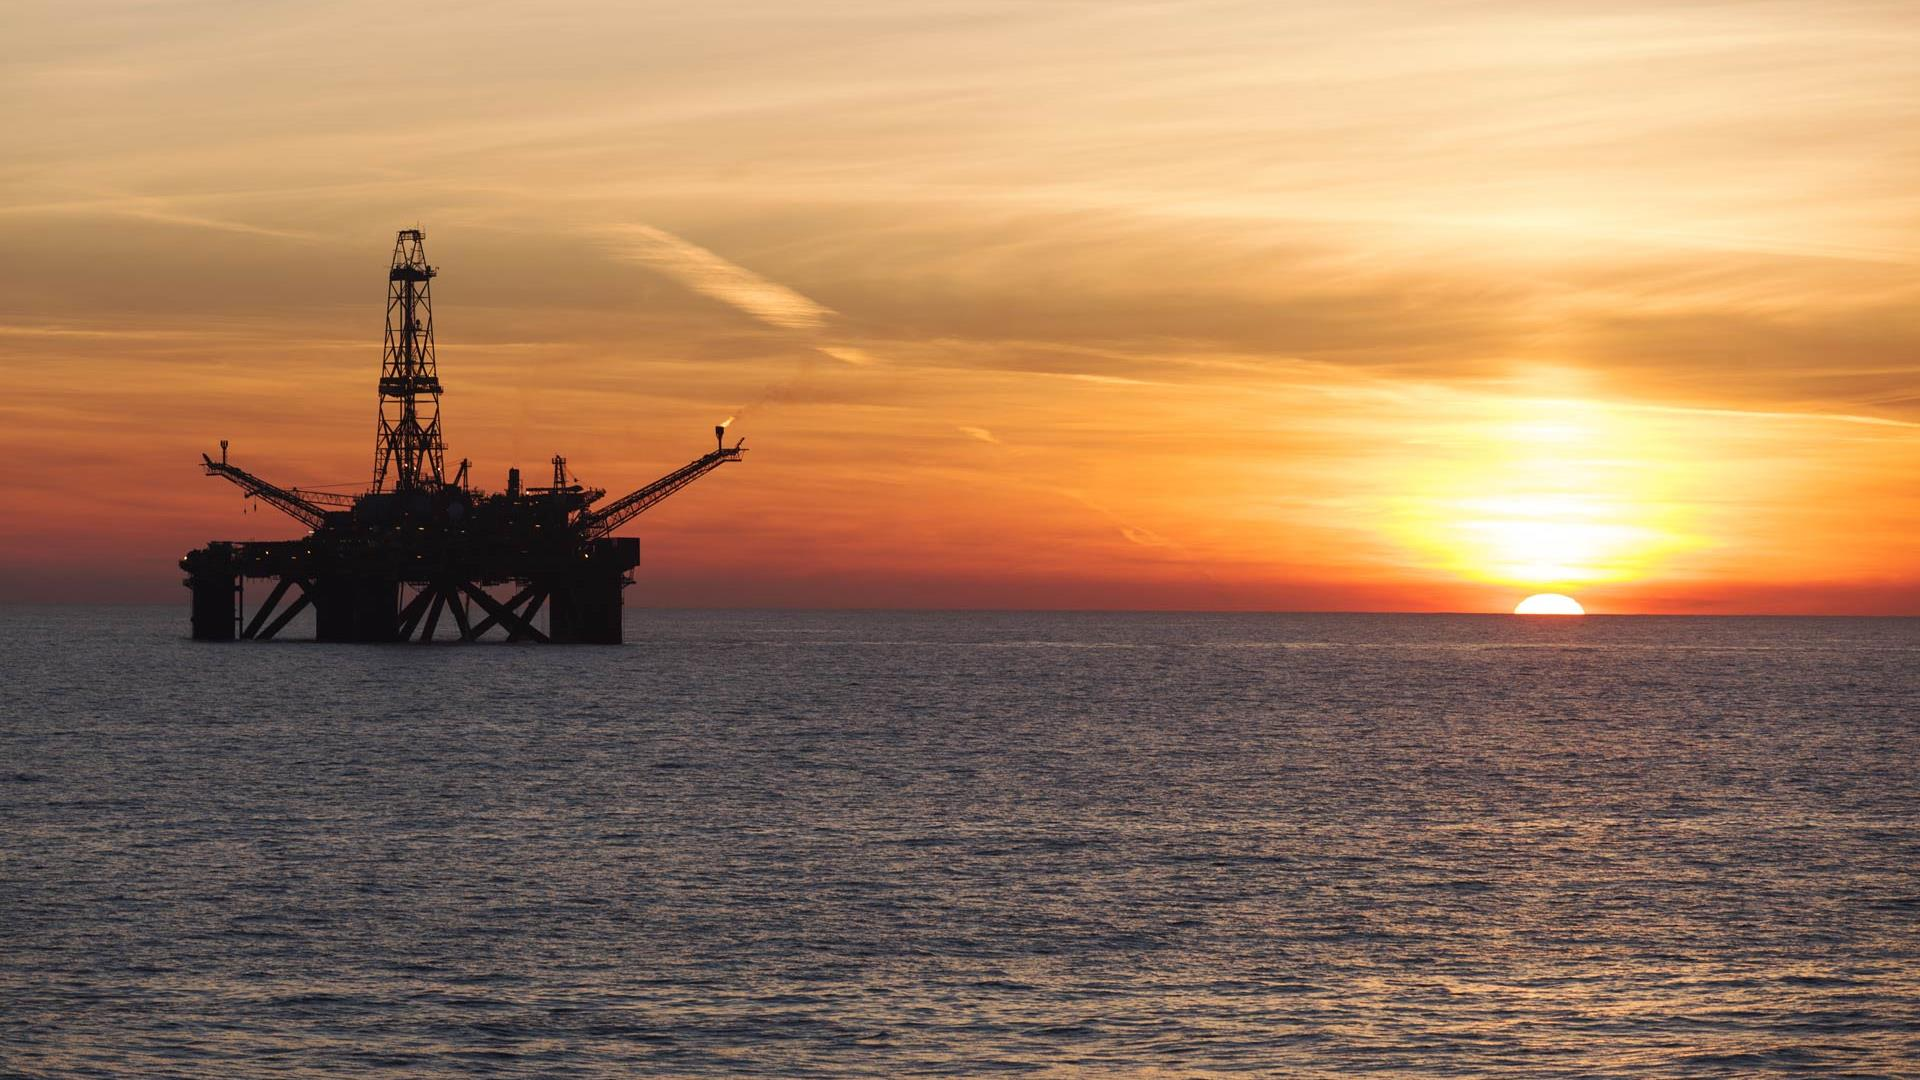 sun setting on offshore rig under construction